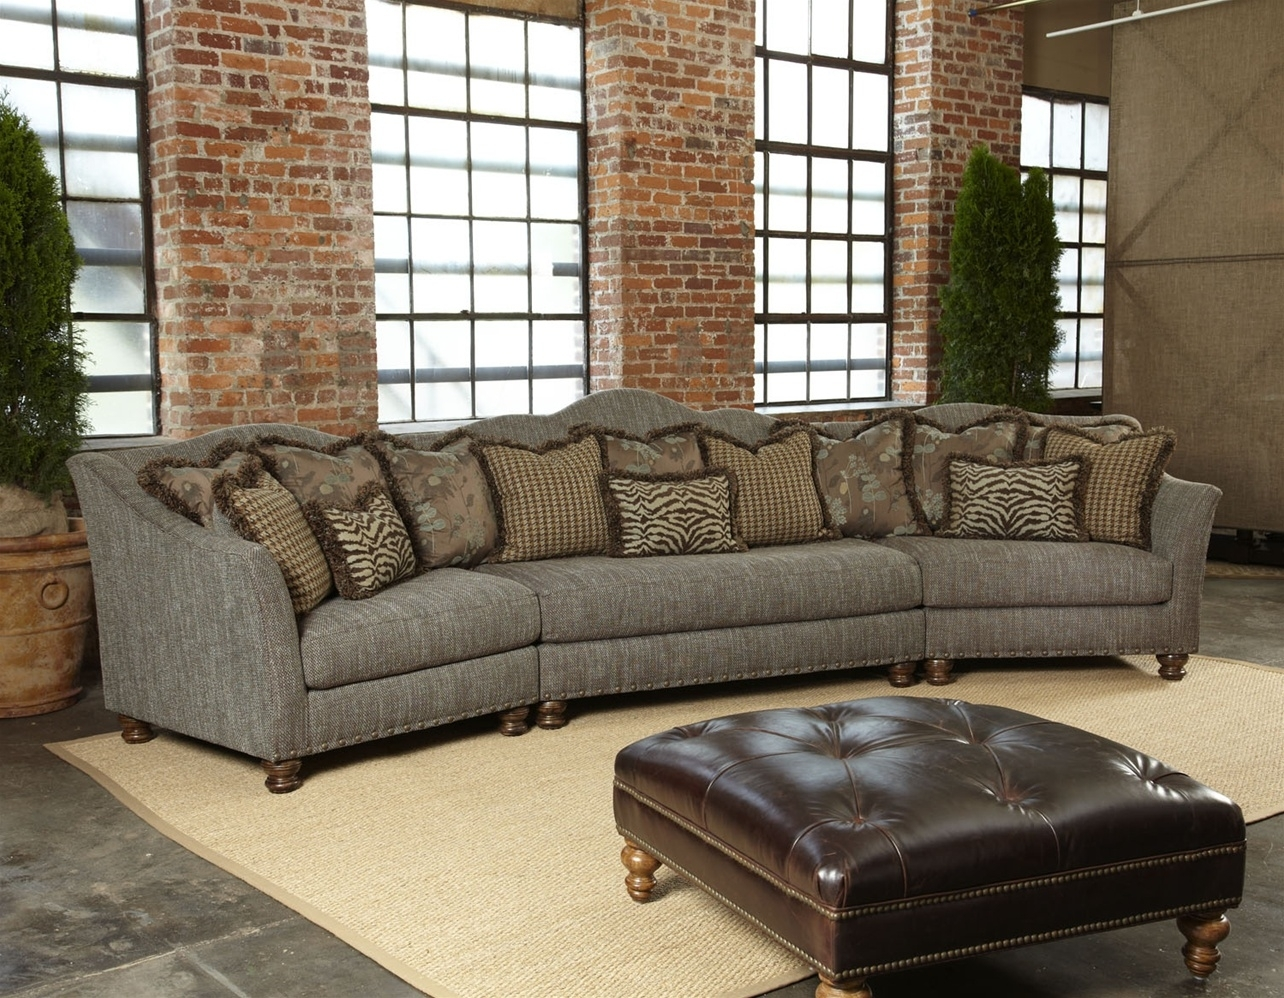 Good Quality Sectional Sofas – Cleanupflorida With Sectional Sofas In North Carolina (View 5 of 10)